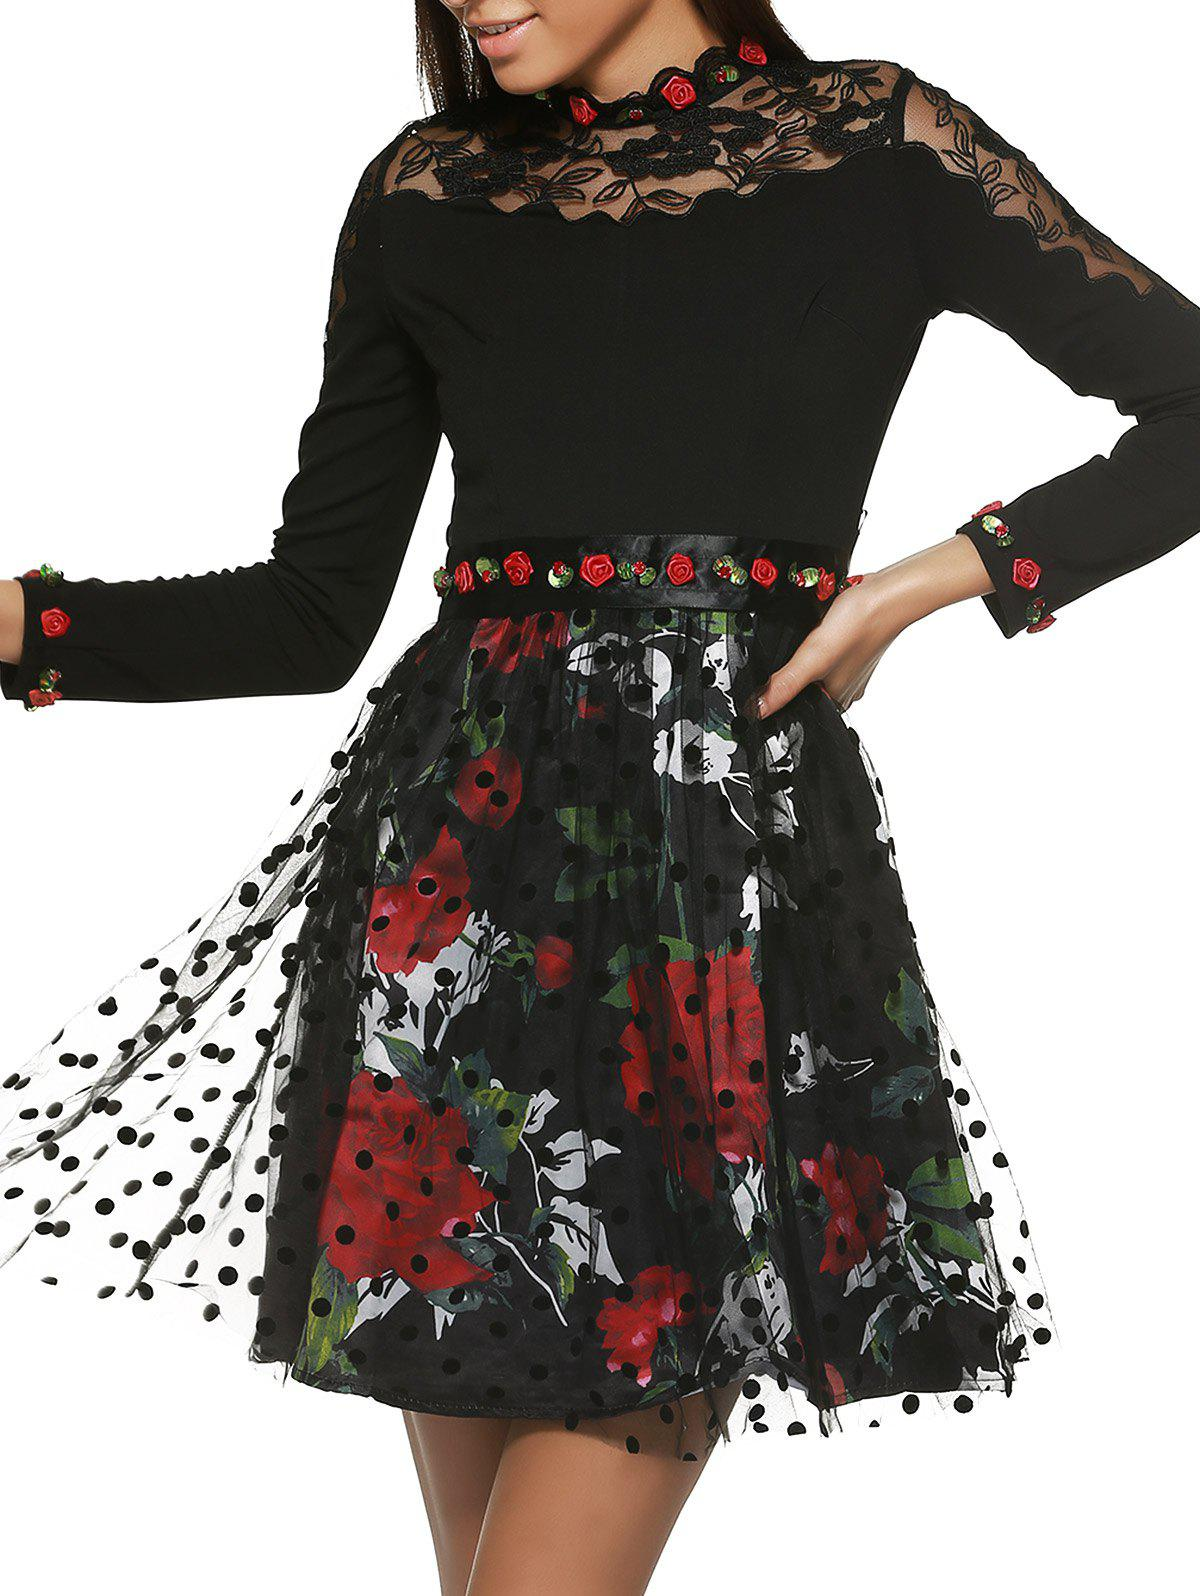 Long Sleeve Floral Belt Tie Printed Spliced Dress - BLACK XL